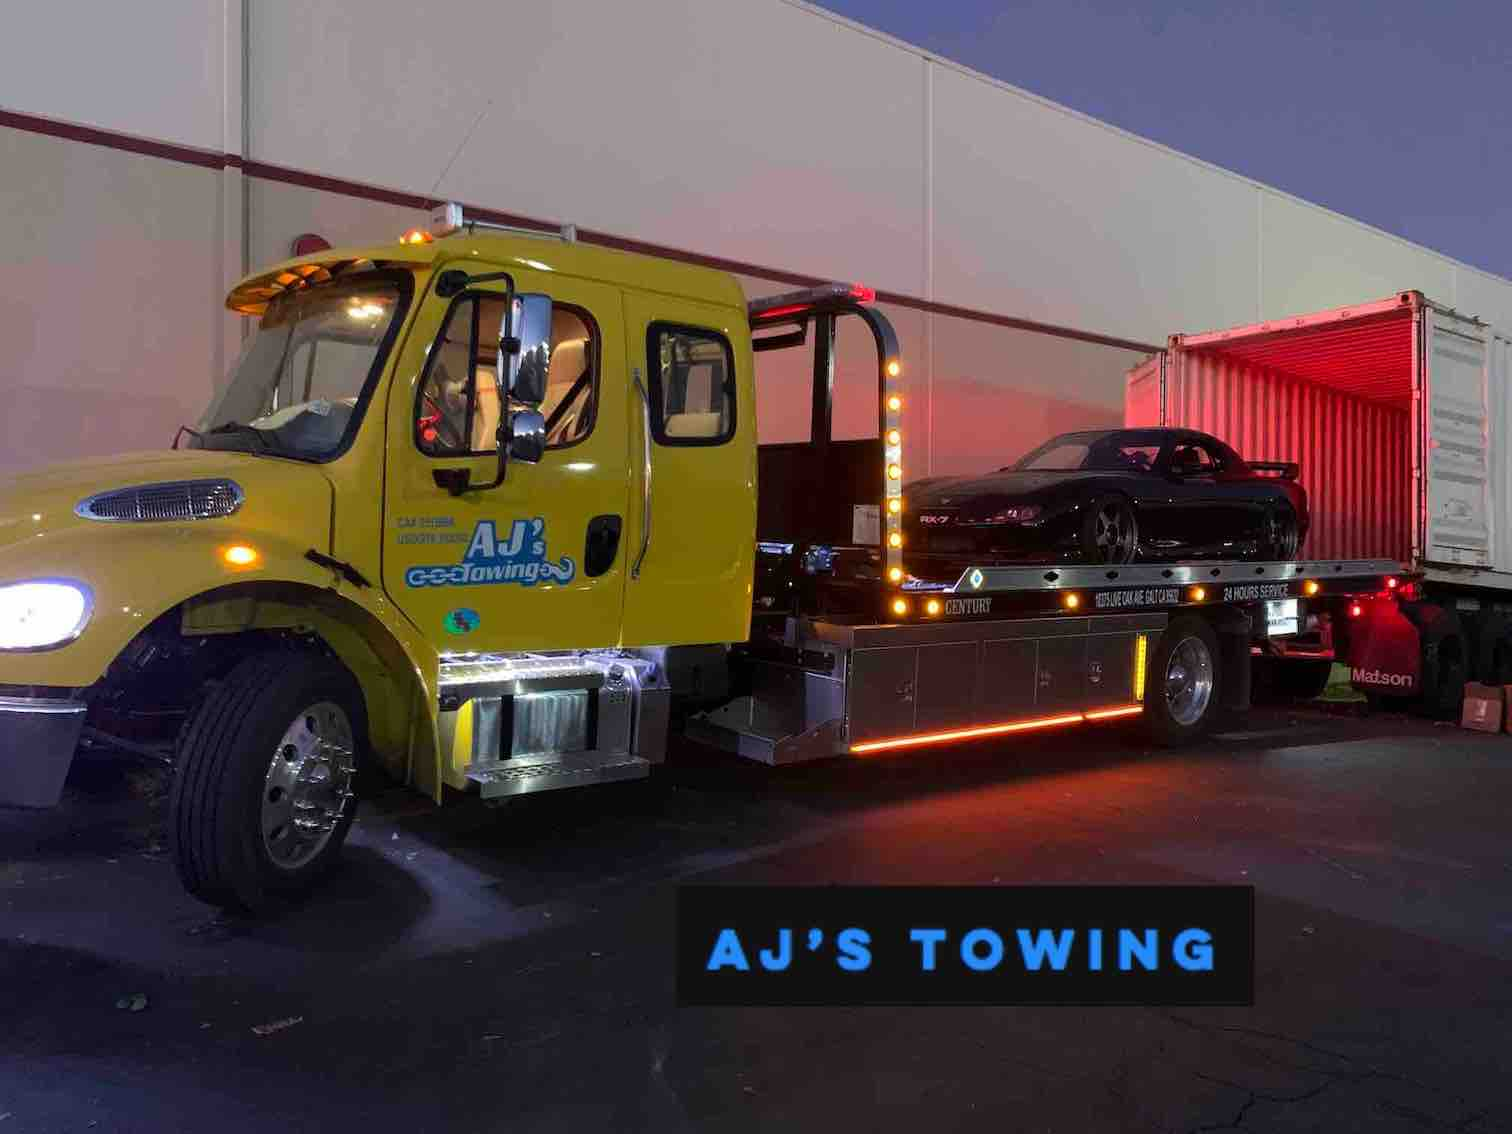 Towing Service in action sending RX7 to Hawaii